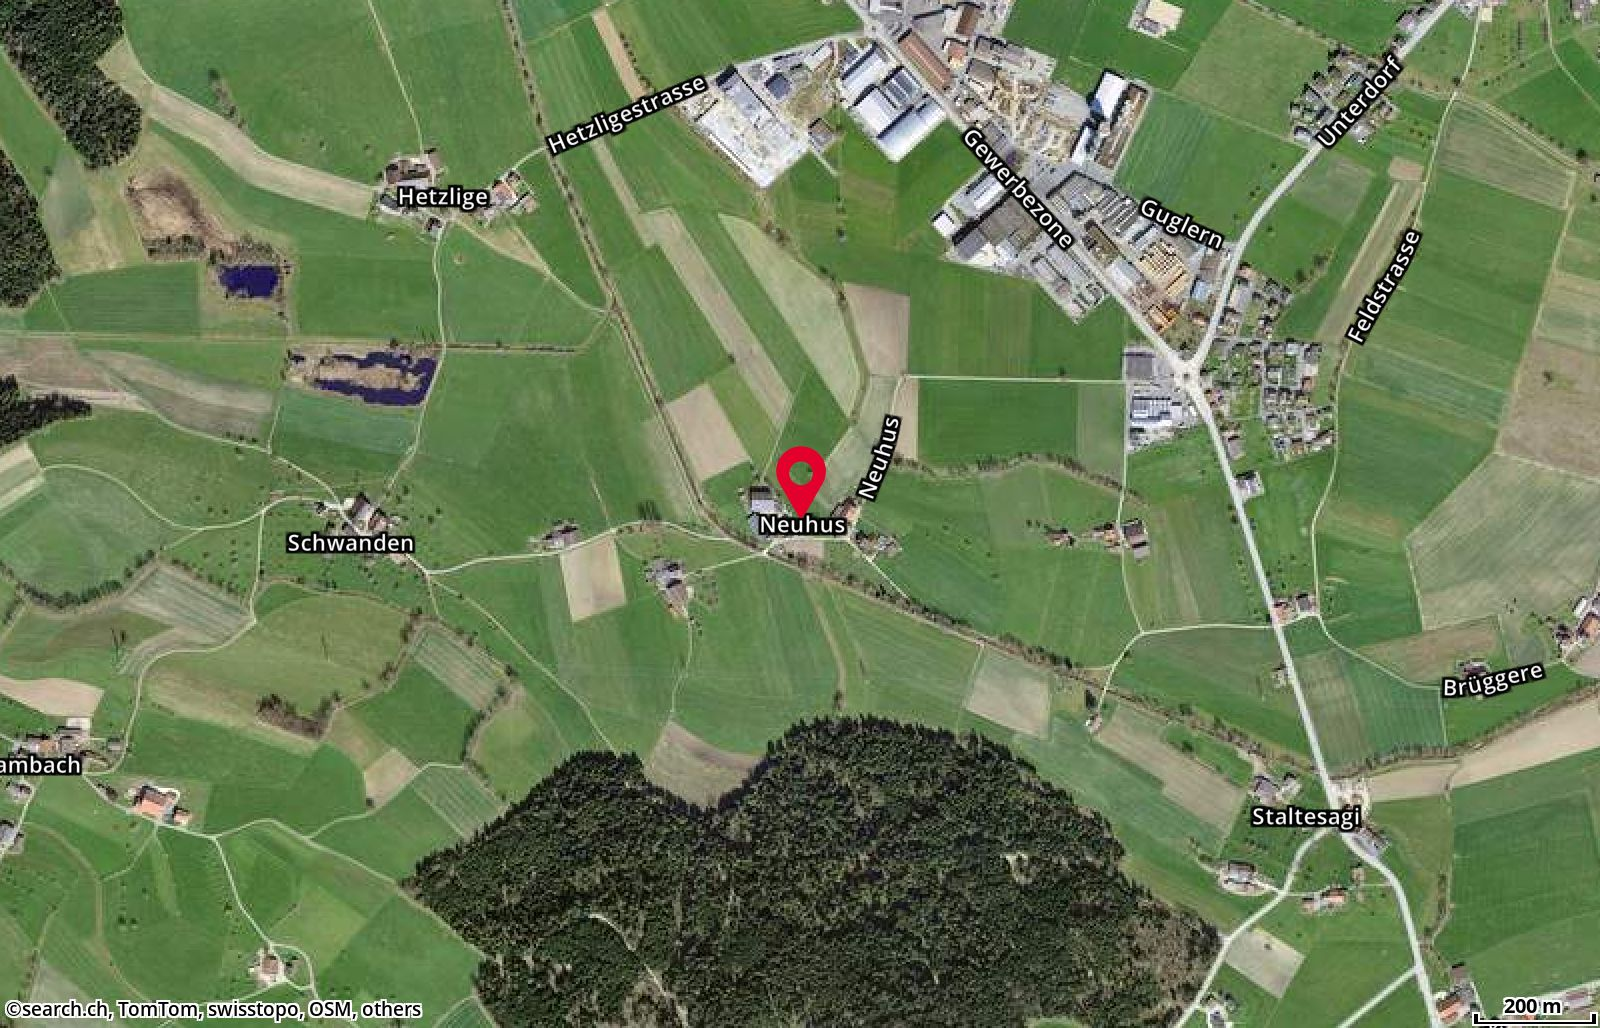 Map: Buttisholz, Neuhus